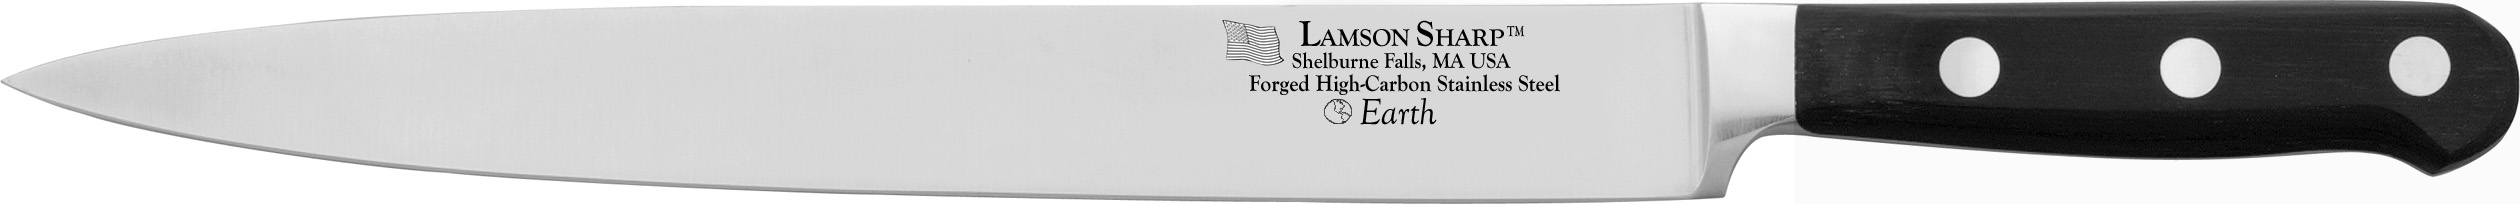 "Lamson Earth Forged 10"" Slicer Knife (Online Only)"